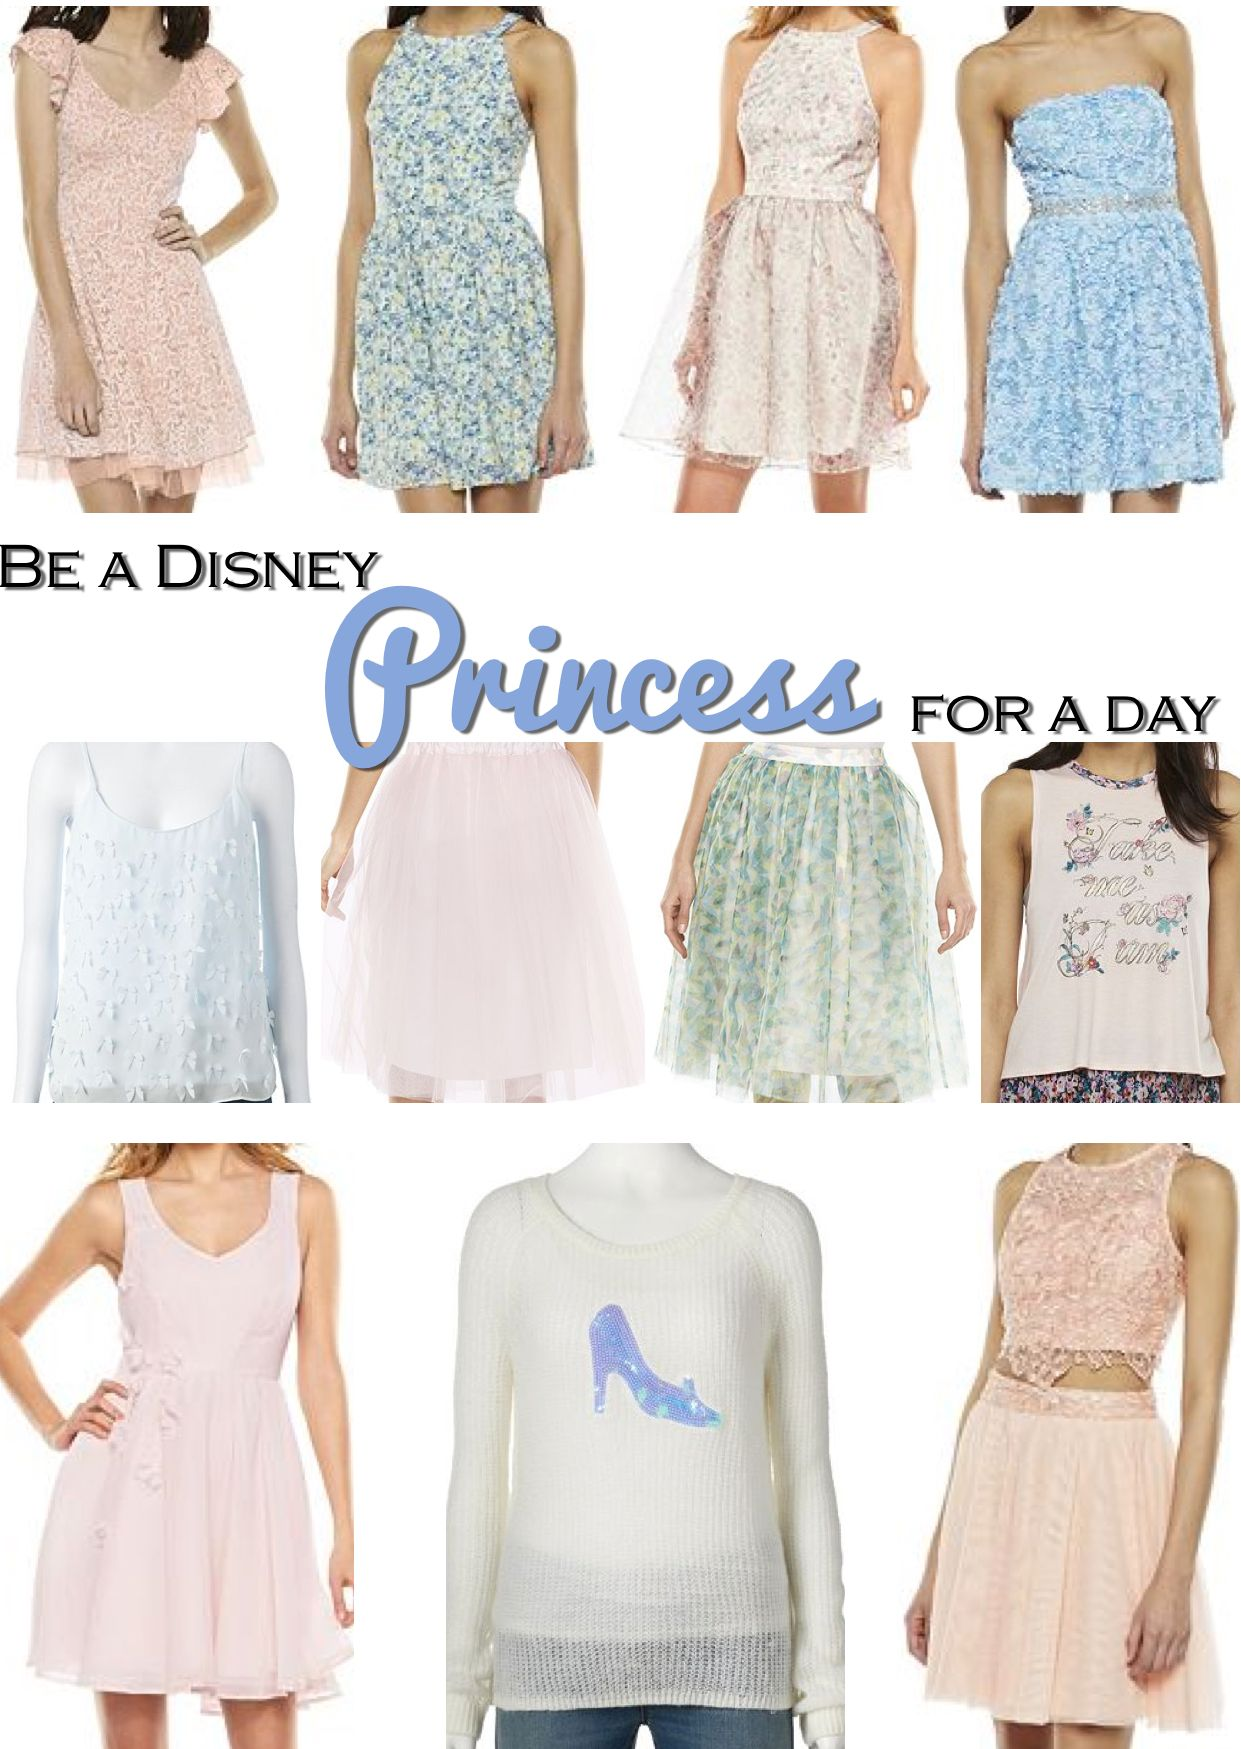 fc0751730 Kohl's + Disney= LC by Lauren Conrad Cinderella Collection! girly,  whimsical and carefree